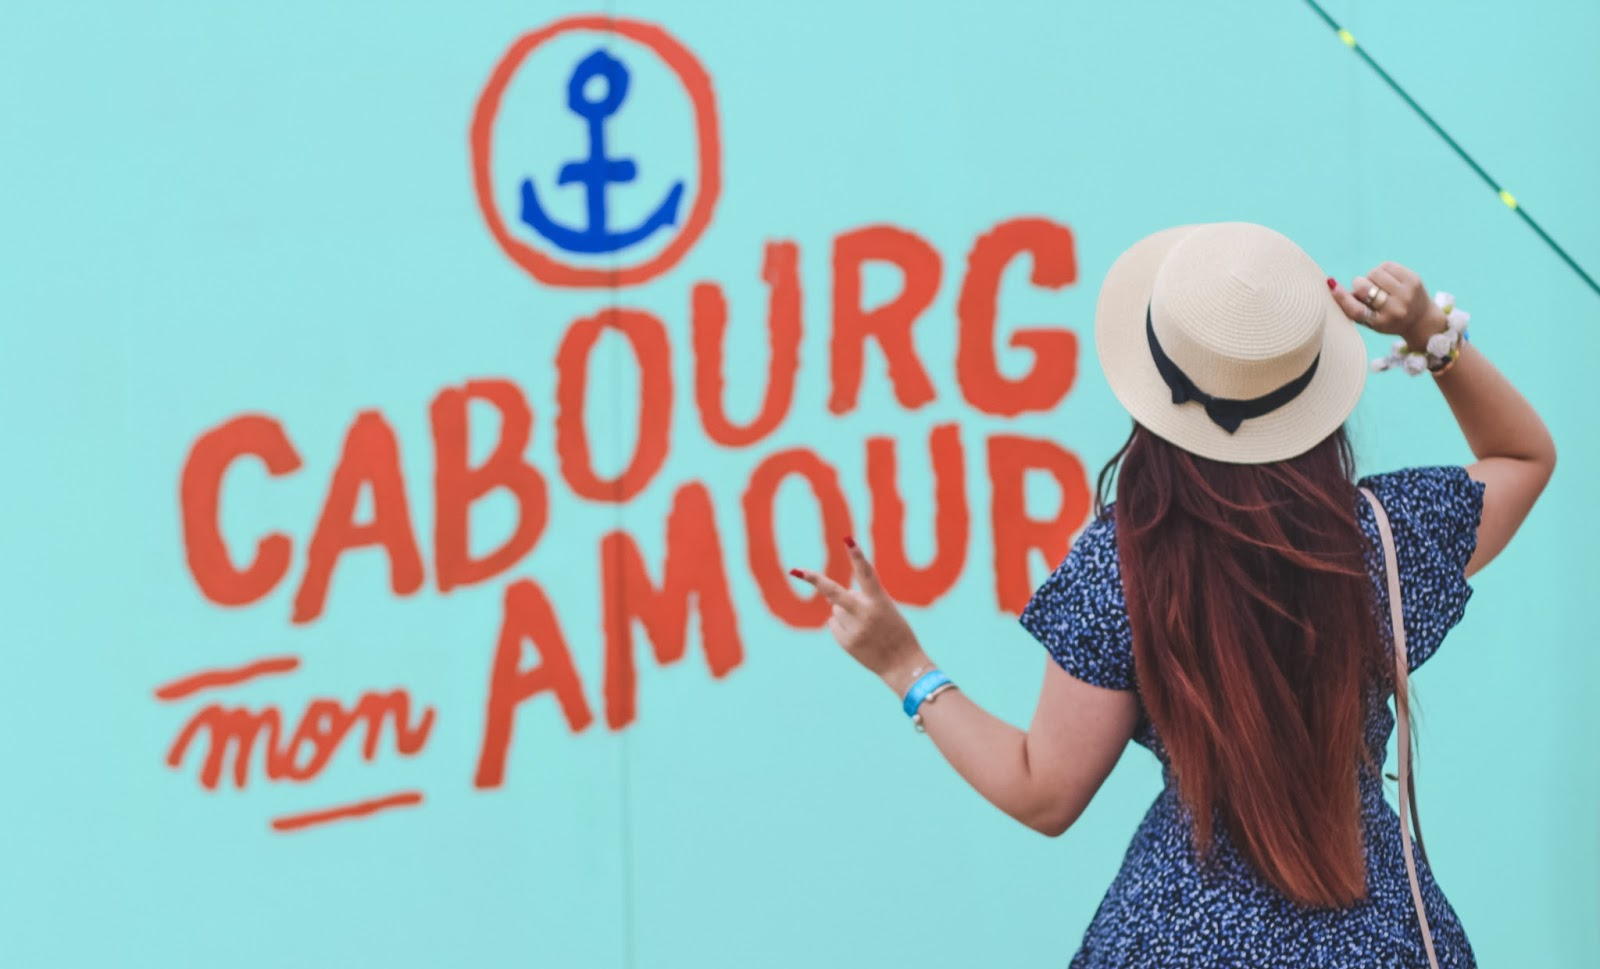 cabourg mon amour venus is naive